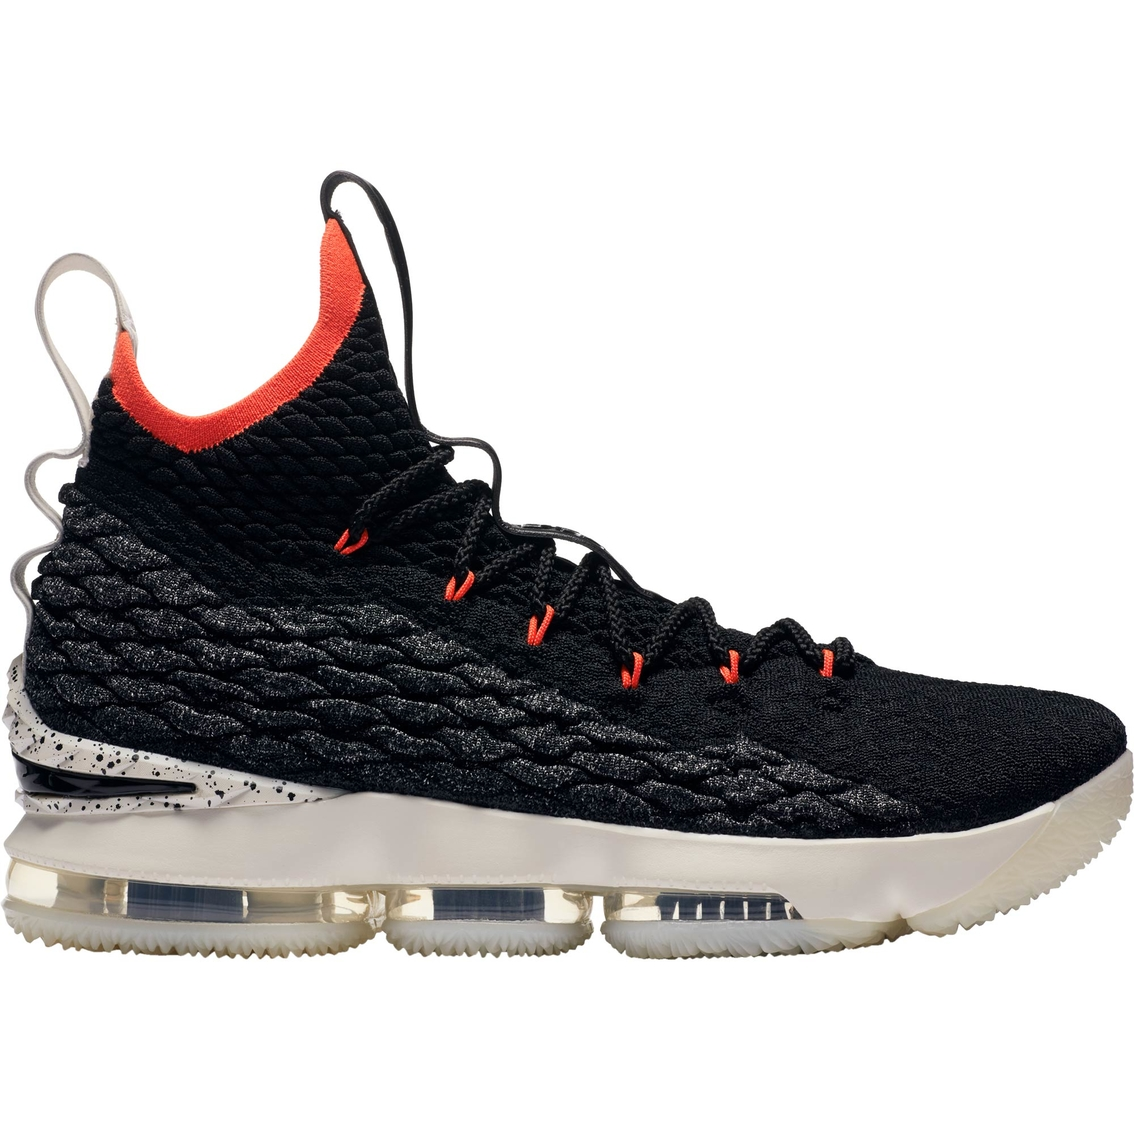 release date a577c 8277a Nike Men s LeBron XV Basketball Shoes